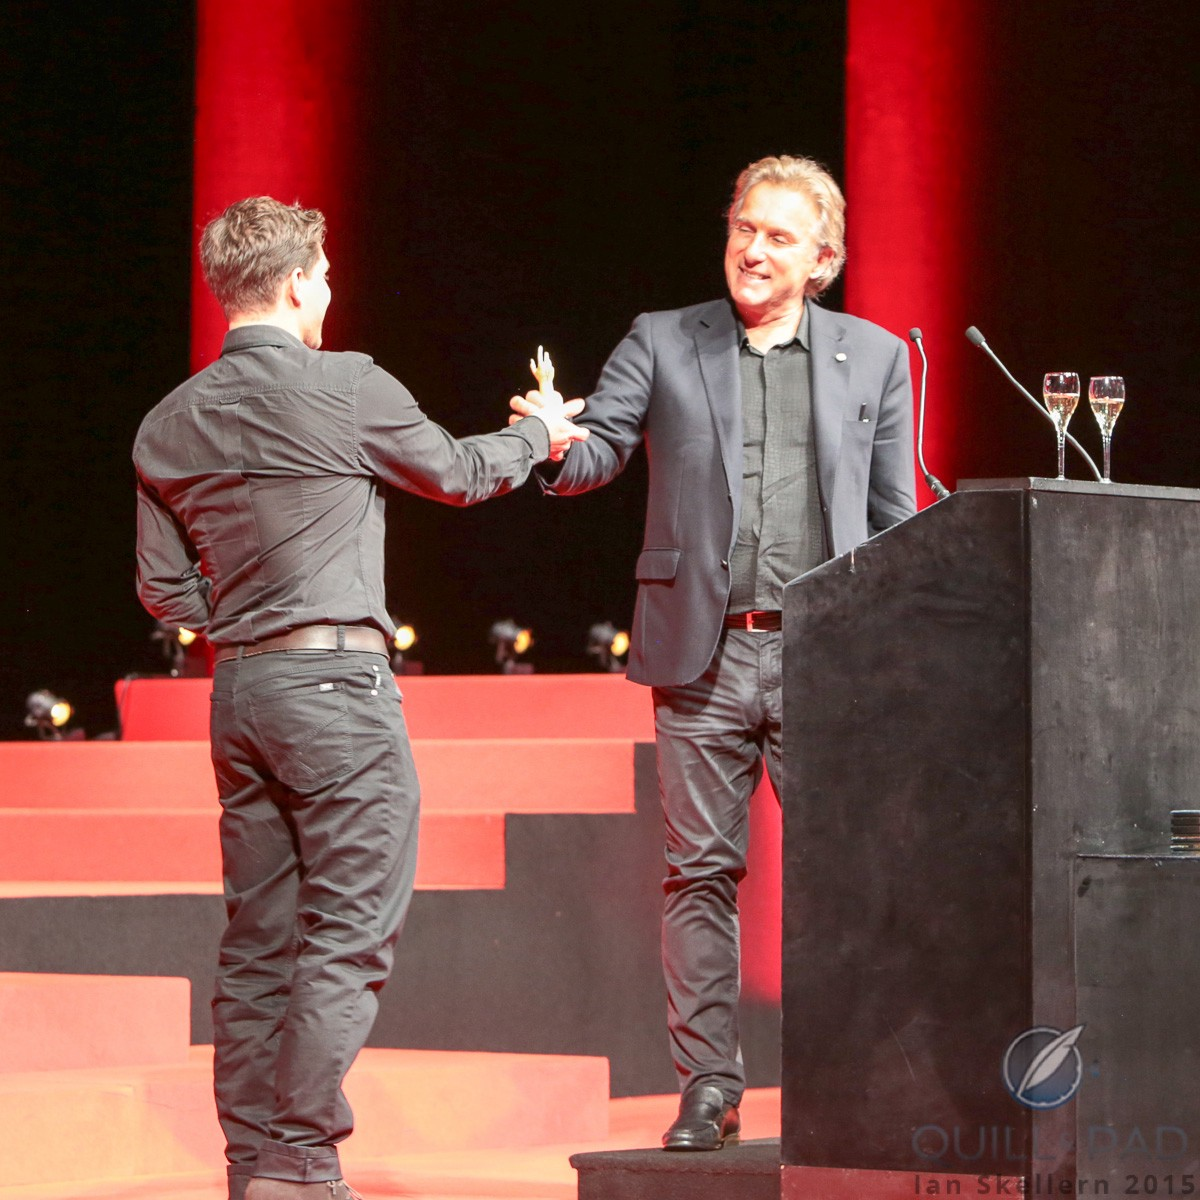 Antoine (right) and Florian Preziuso celebrating the Innovation prize at the 2015 Grand Prix d'Horlogerie de Genève for their Tourbillon of Tourbillons